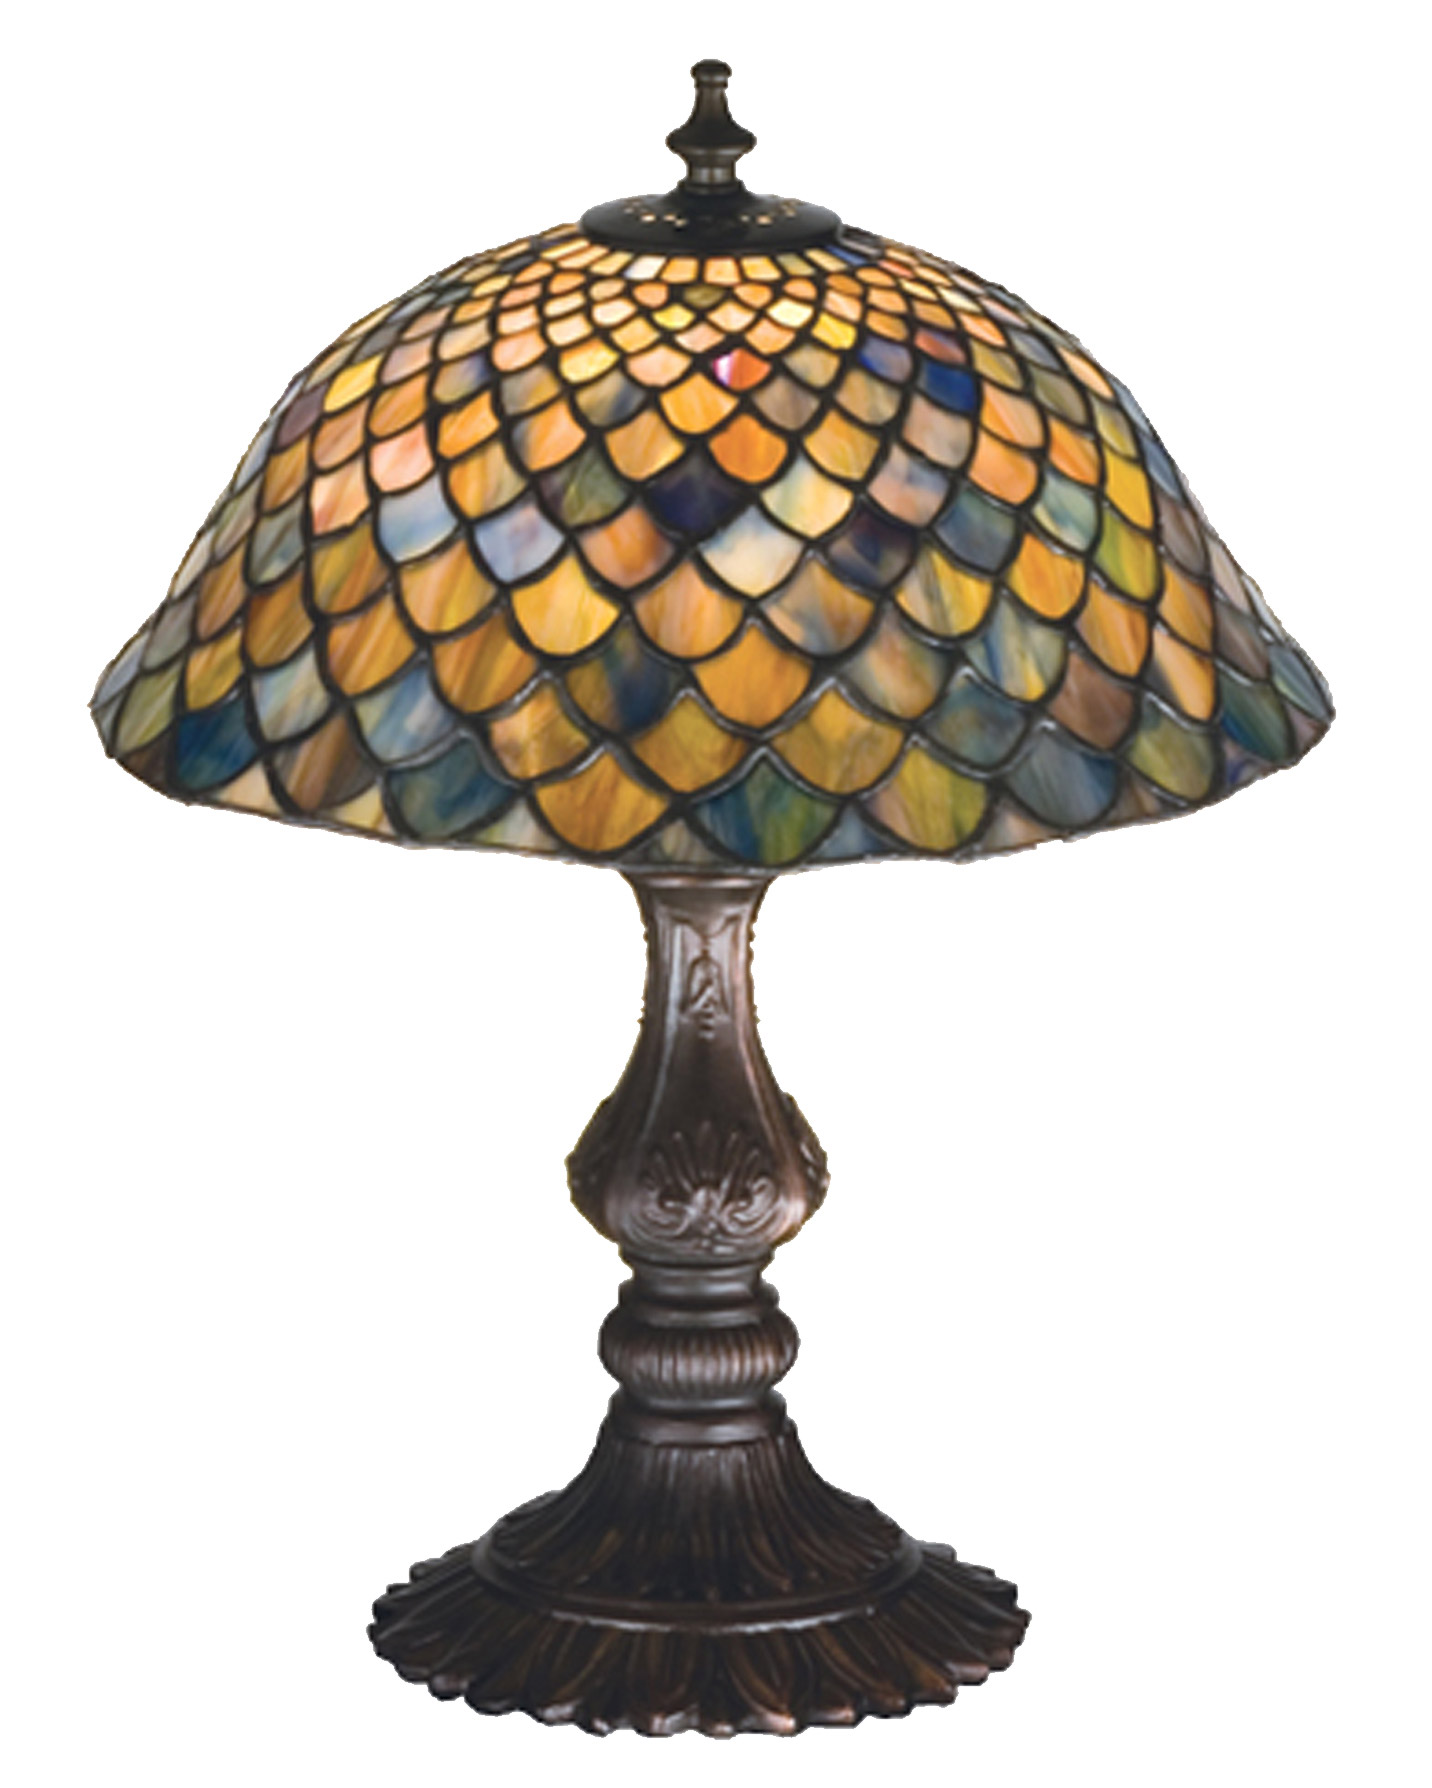 home lamps table lamps standard table lamps meyda 27170. Black Bedroom Furniture Sets. Home Design Ideas